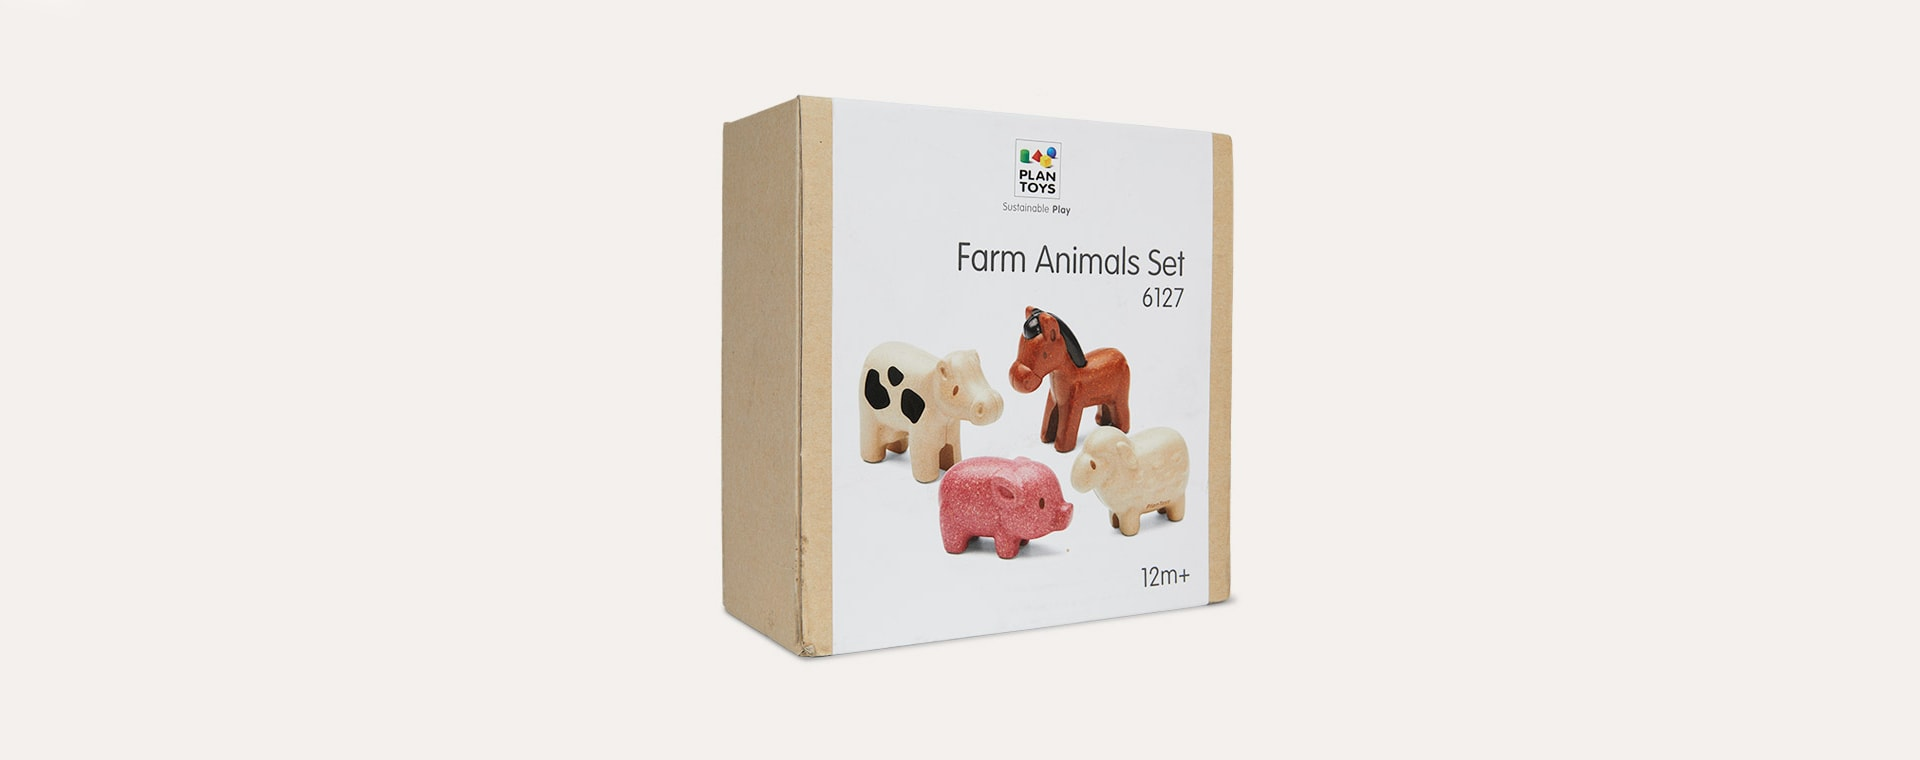 Farm Animals Set Plan Toys Animal Set